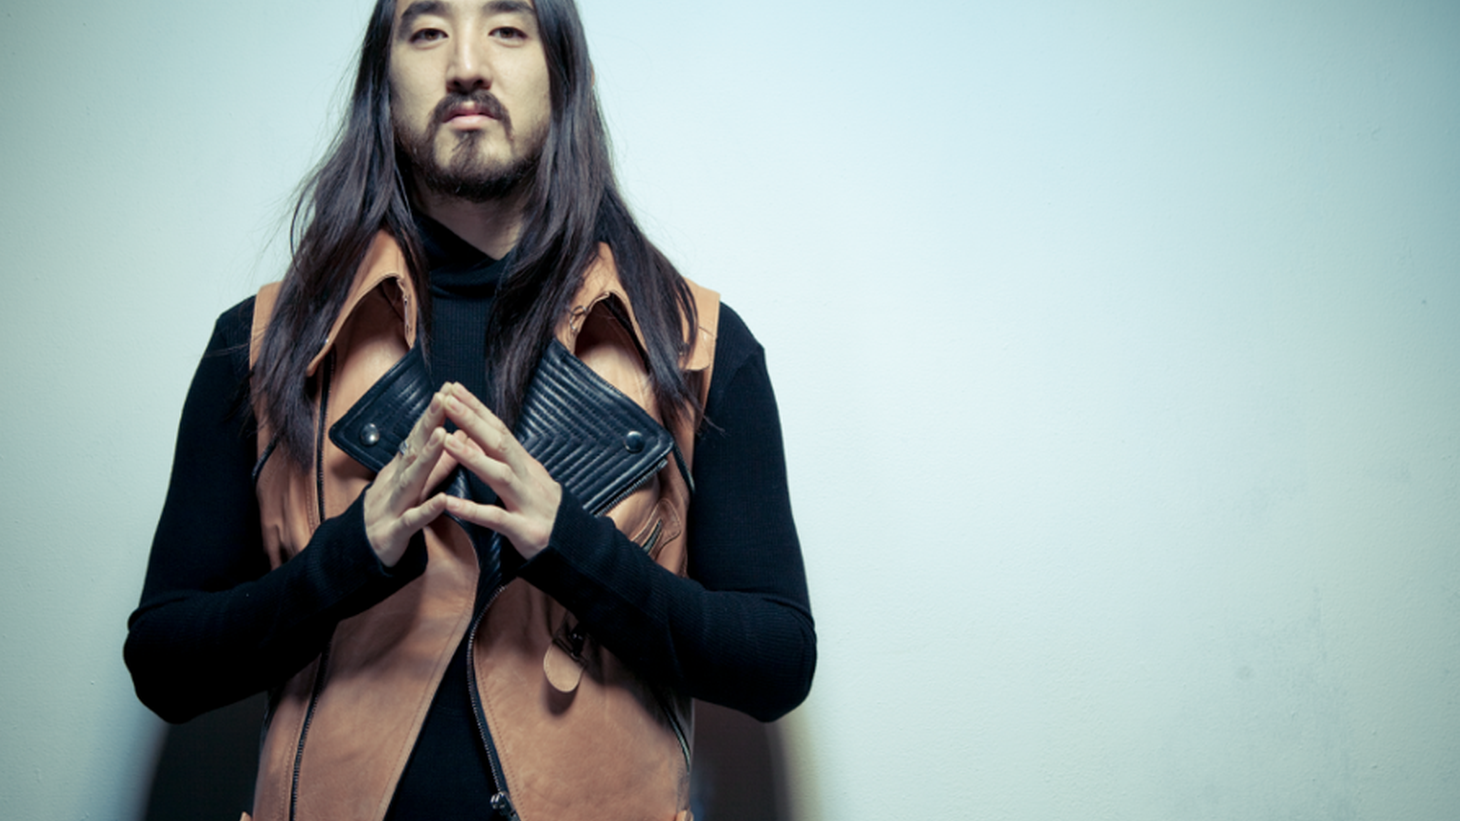 """LA native Steve Aoki grew up skateboarding and listening to Punk Rock. He later found the same DIY ethos of Punk in elements of alternative dance music. Through his Dim Mak brand, Steve has built an empire that includes a range of artists, clothing, and events. The son of entrepreneur, pro-wrestler, and founder of the Benihana restaurant chain Rocky Aoki, Steve applied some of the showmanship he saw in his father to the growing EDM scene and became a leading figure in the genre along the way. Steve sat down with KCRW Music Director Jason Bentley for our Electrospective interview this week. Electrospective is Produced by EMI Music in association with KCRW. Select """"listen"""" below for a stream of an Aoki-inspired music mix leading up to the conversation with Steve, or choose """"download"""" to podcast the interview-only version of Electrospective. For more information, go to www.electrospective.com and watch this space for a new guest interview each week."""